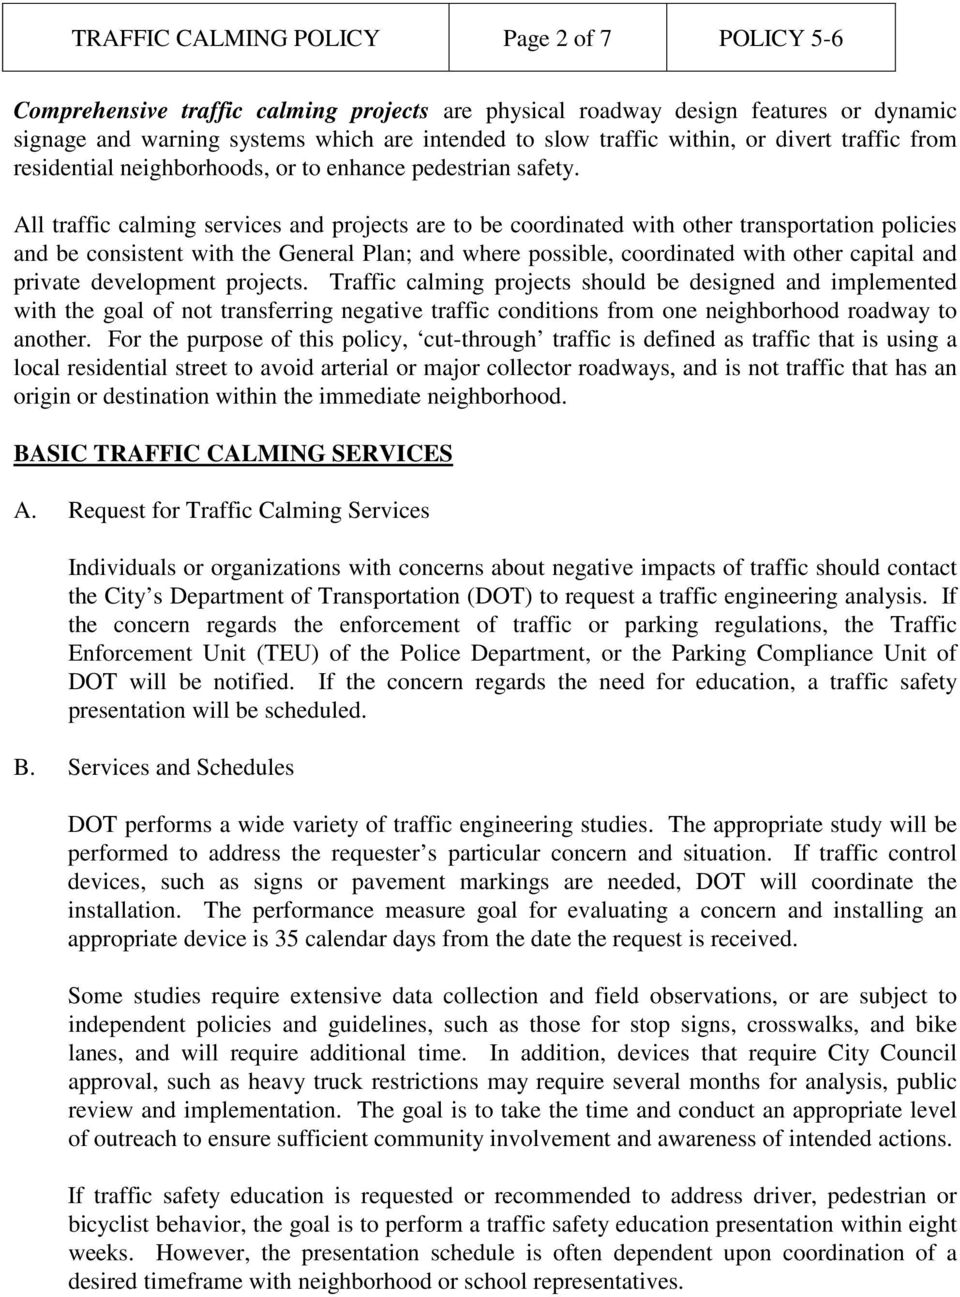 All traffic calming services and projects are to be coordinated with other transportation policies and be consistent with the General Plan; and where possible, coordinated with other capital and